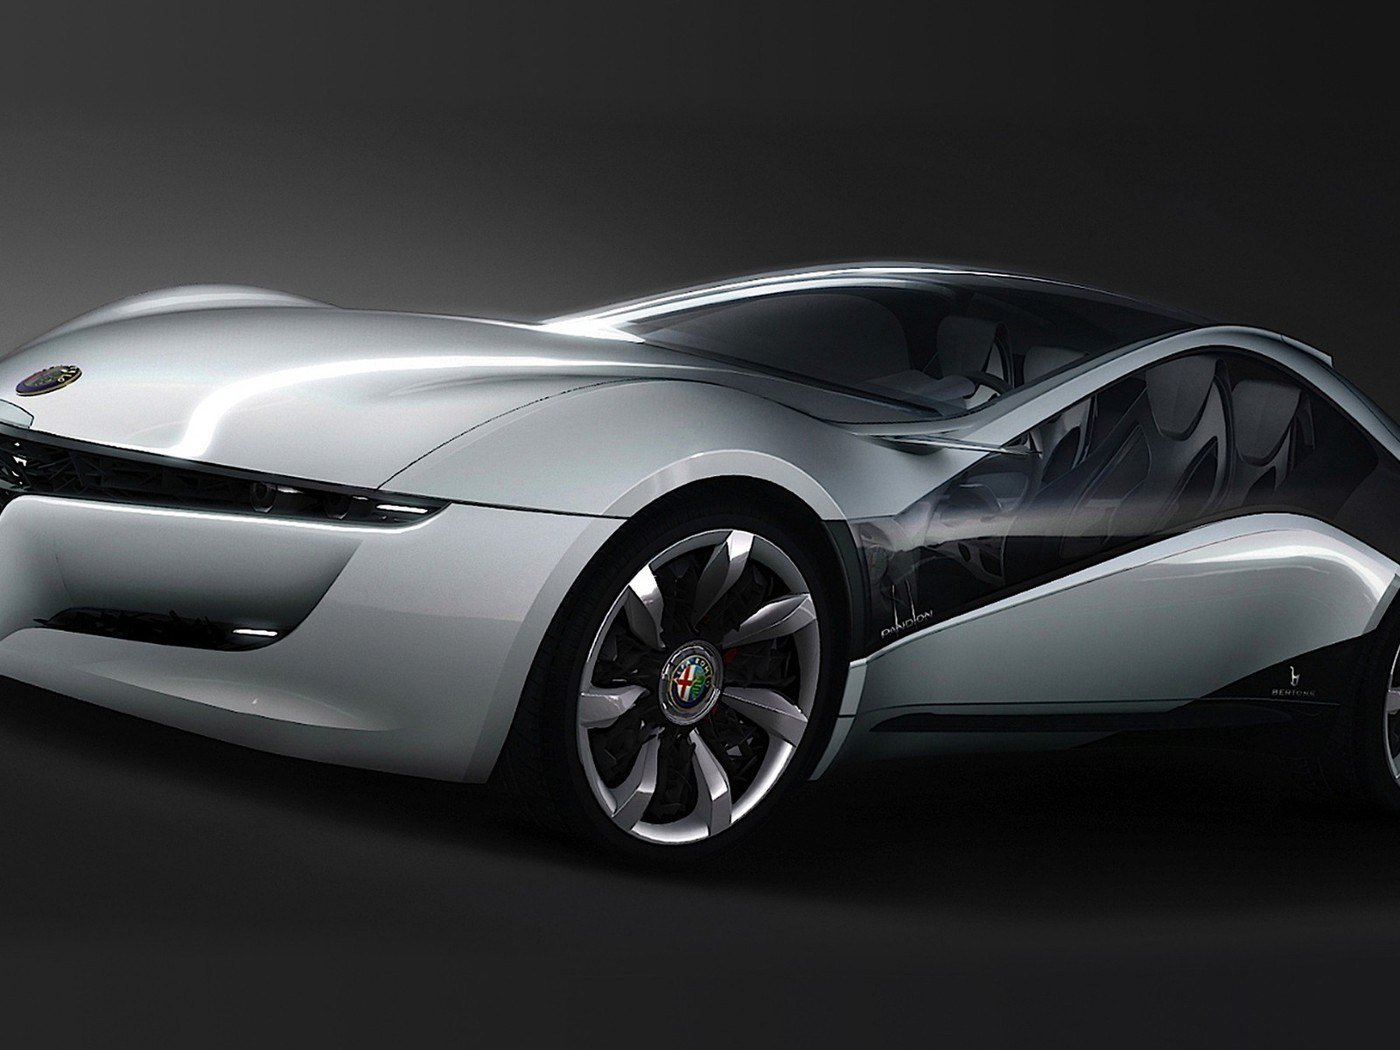 Latest Alfa Romeo Pandion Bertone Cars Concept Art Wallpaper Free Download